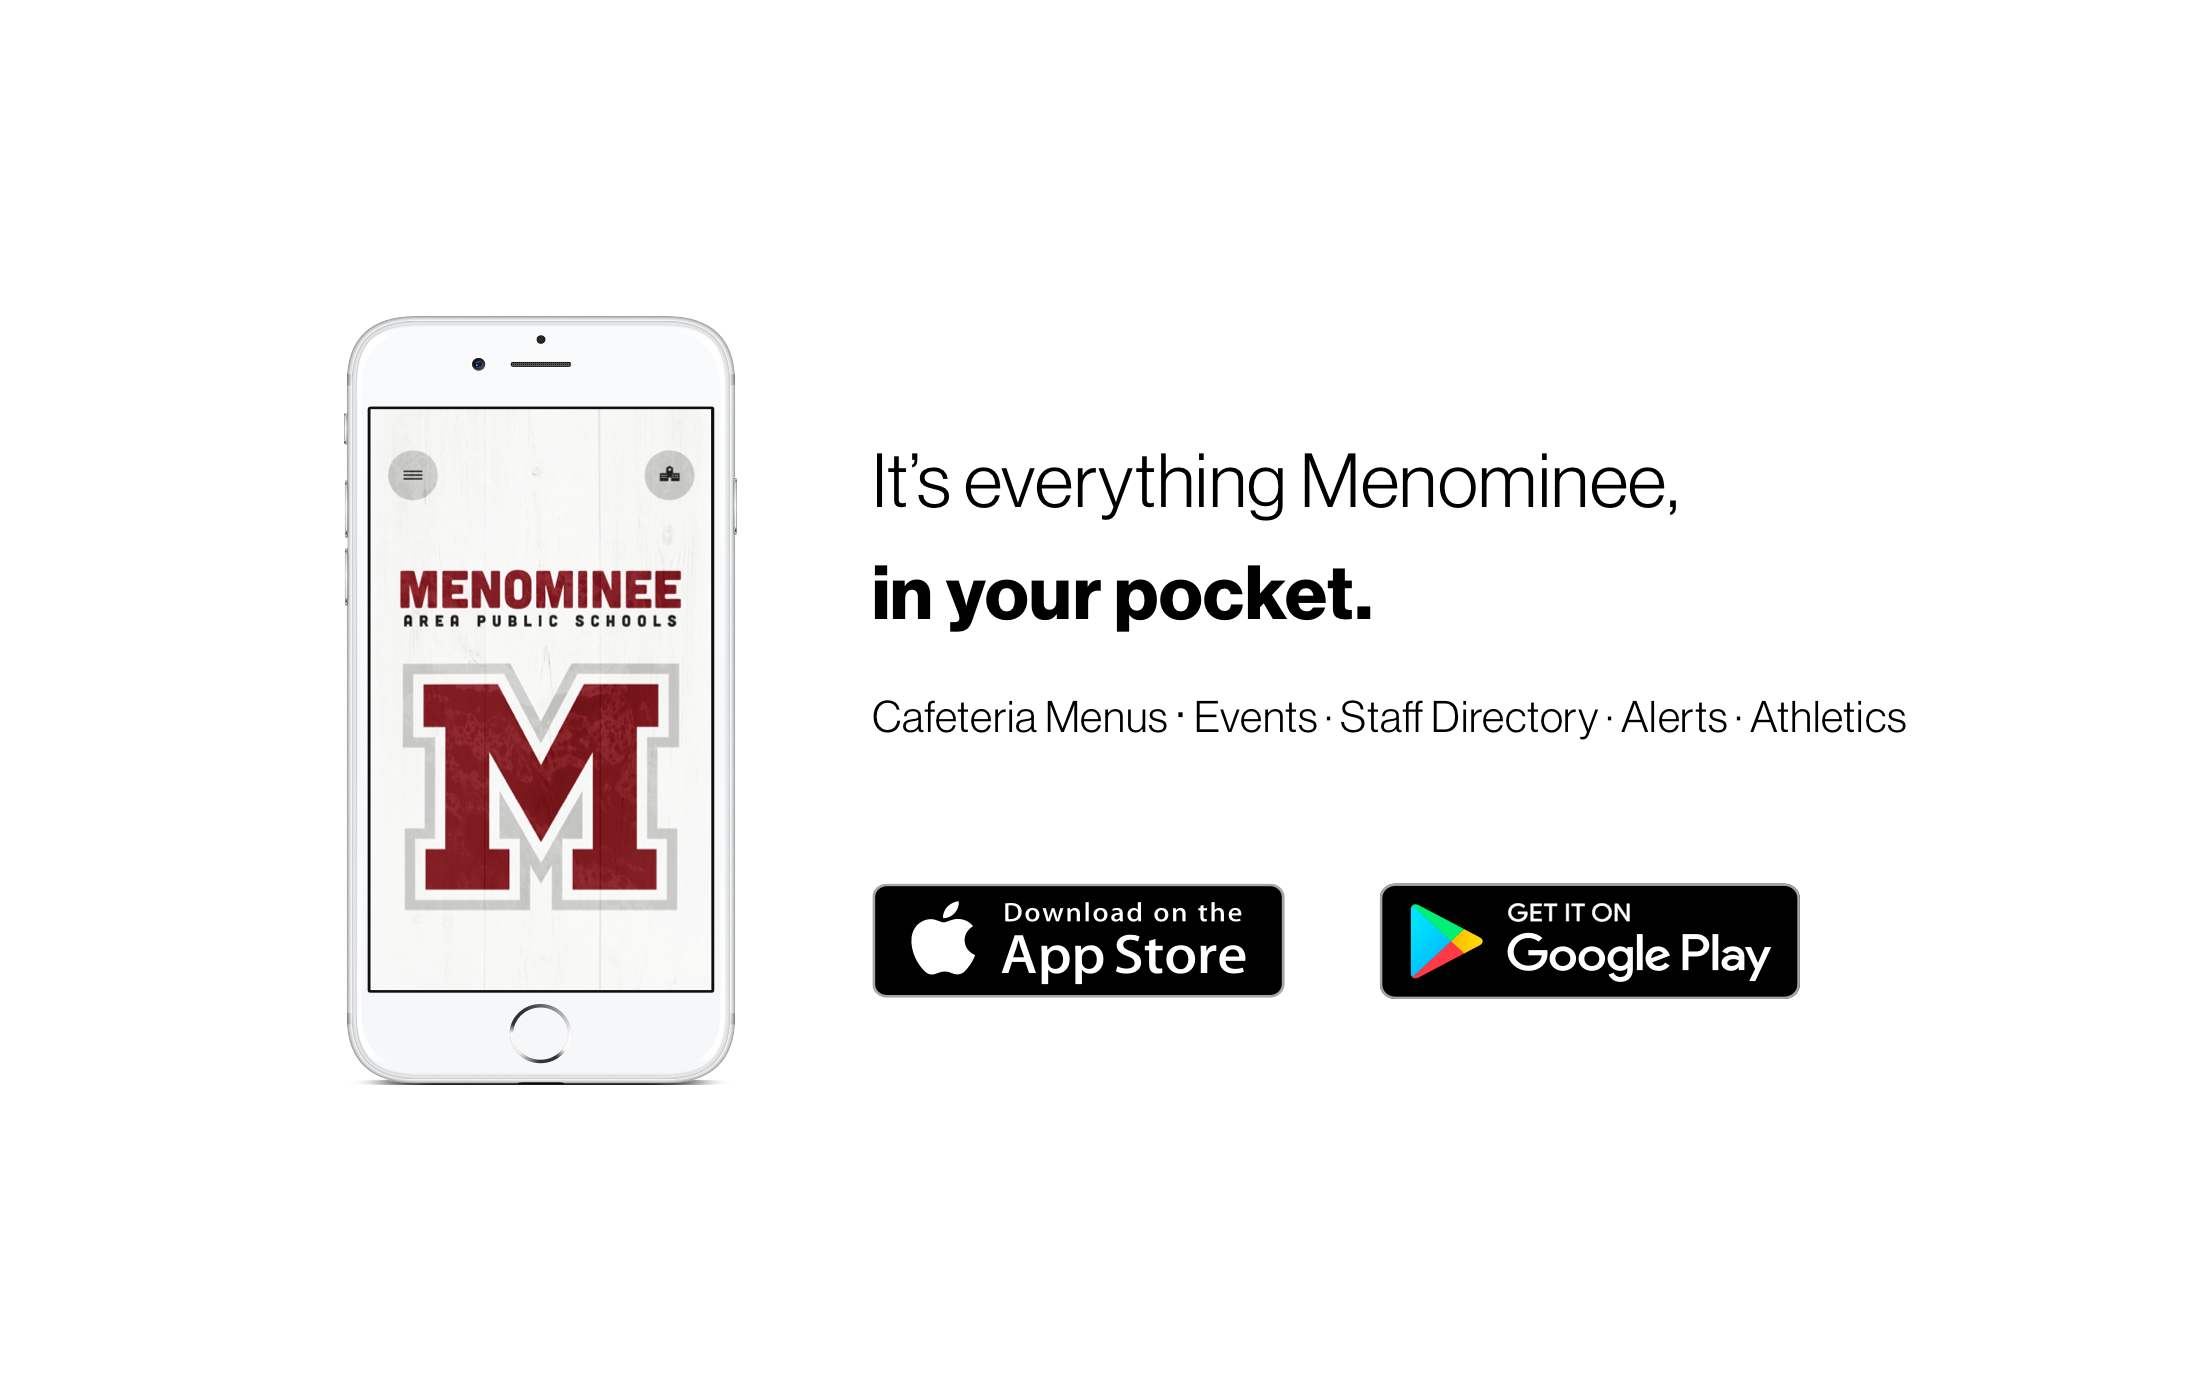 It's everything Menominee, in your pocket.